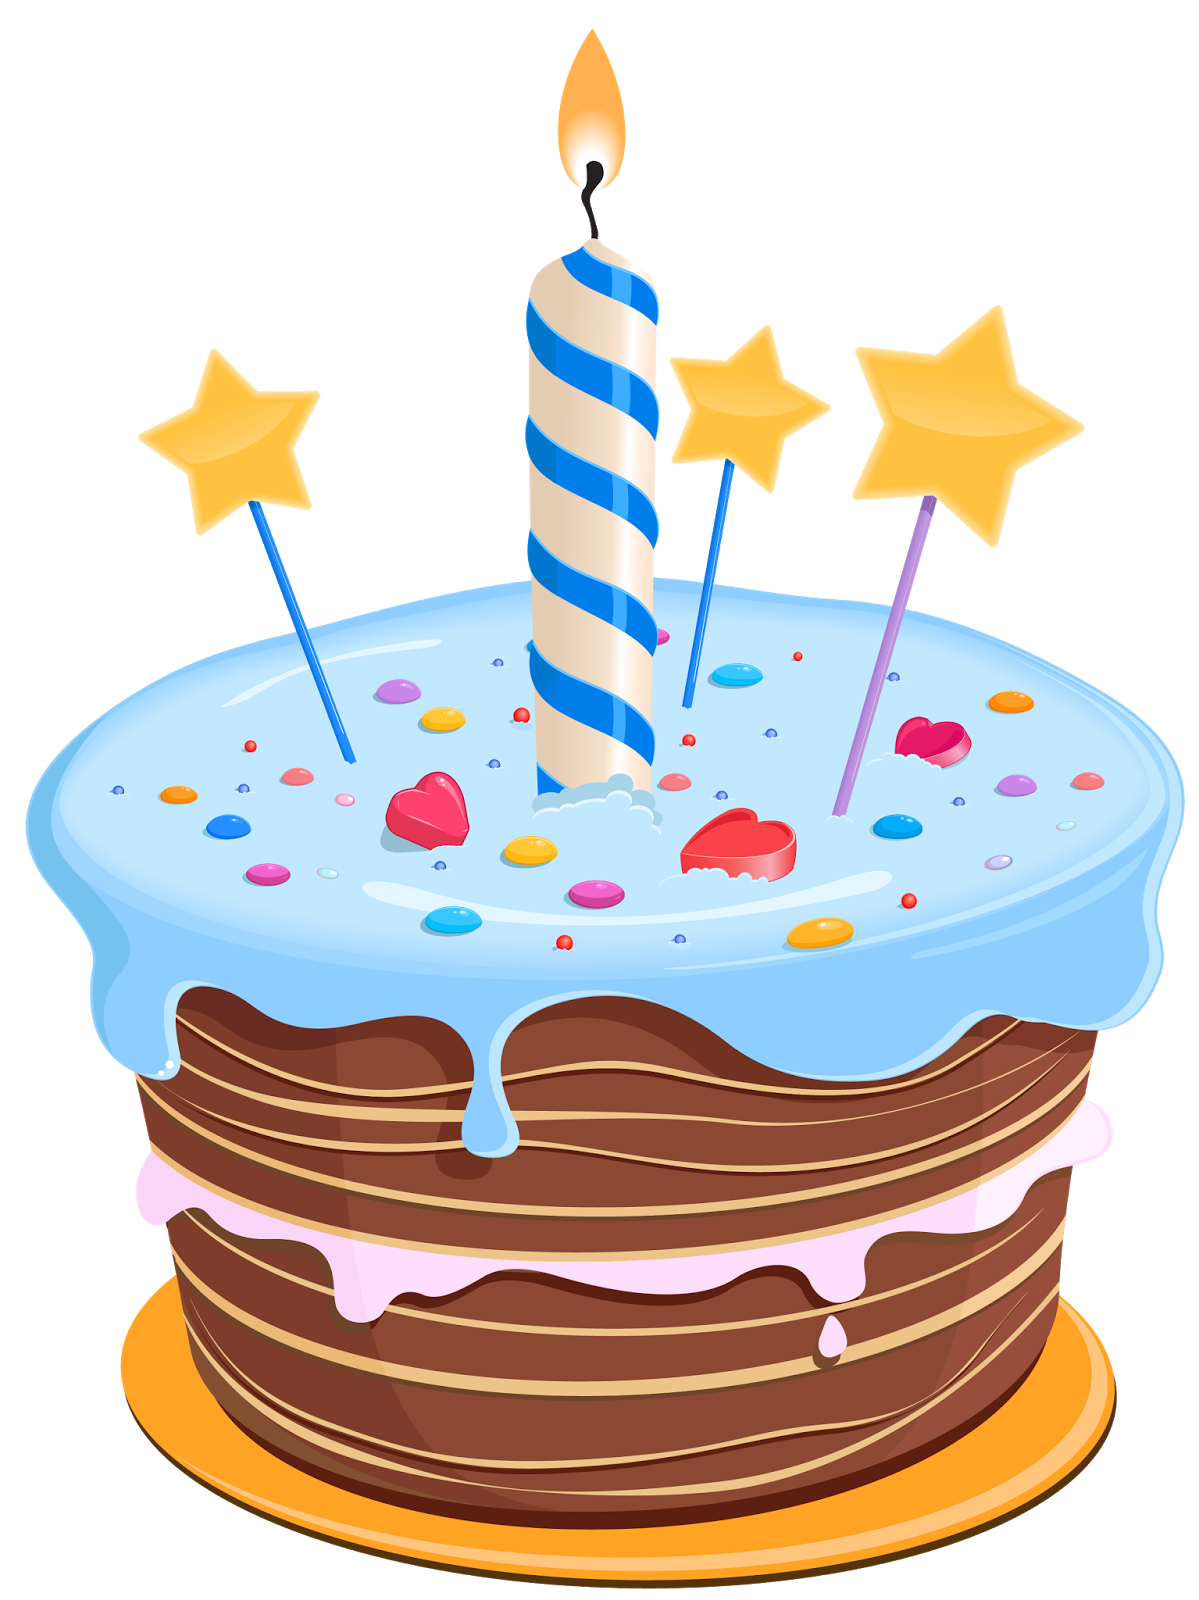 Happy birthday football clipart image royalty free library Immagini Torta di Compleanno | Illustrazioni e Clip Art #compleanno ... image royalty free library